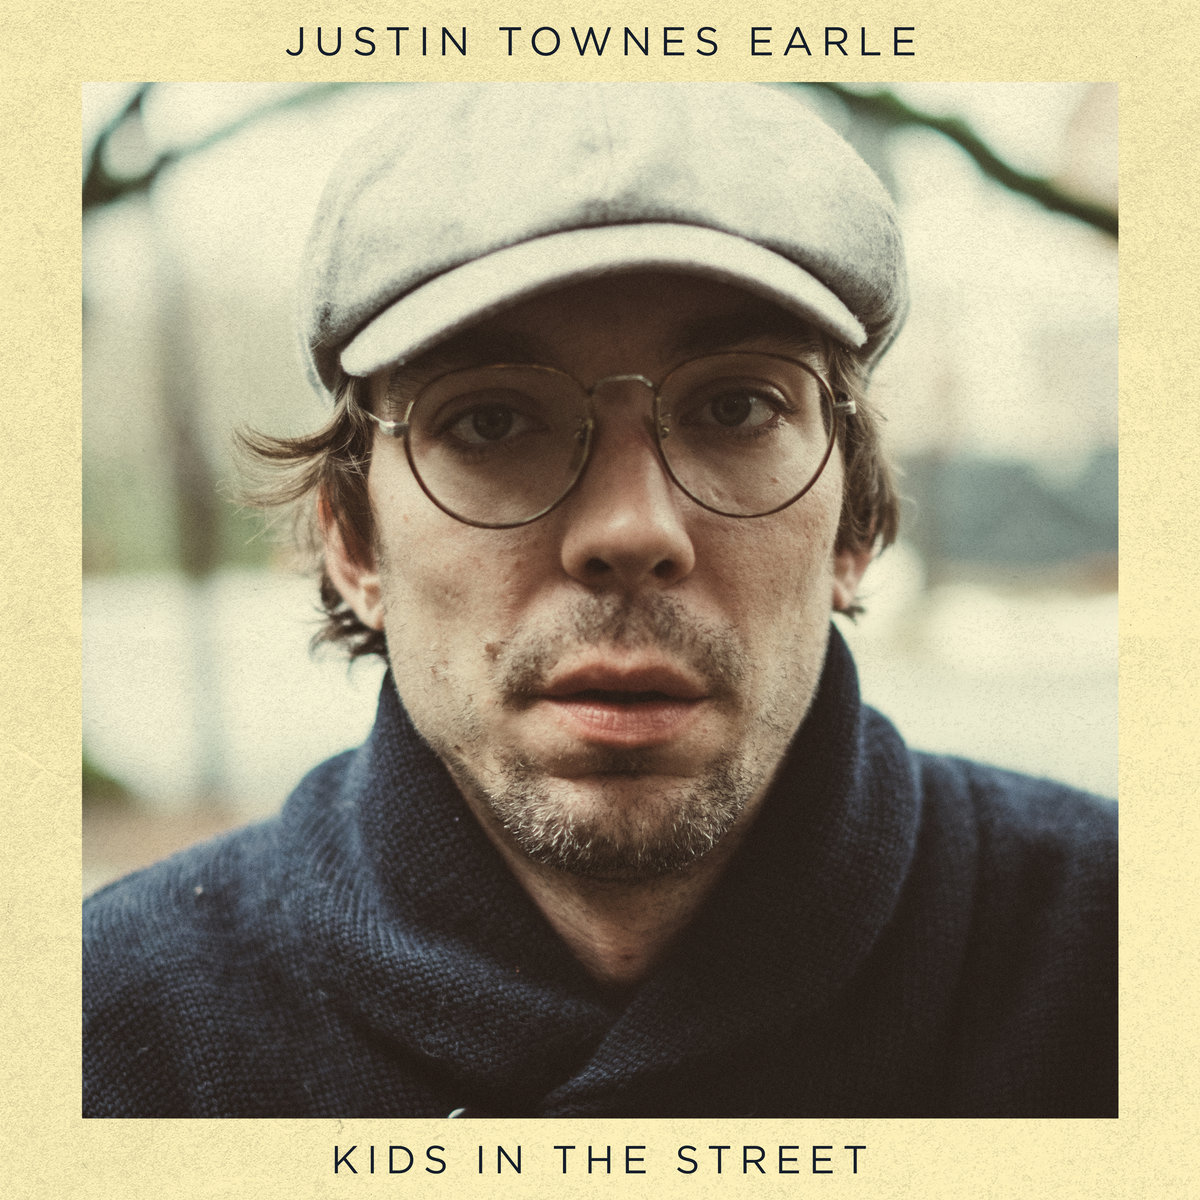 Album Review: Justin Townes Earle - Kids In The Street